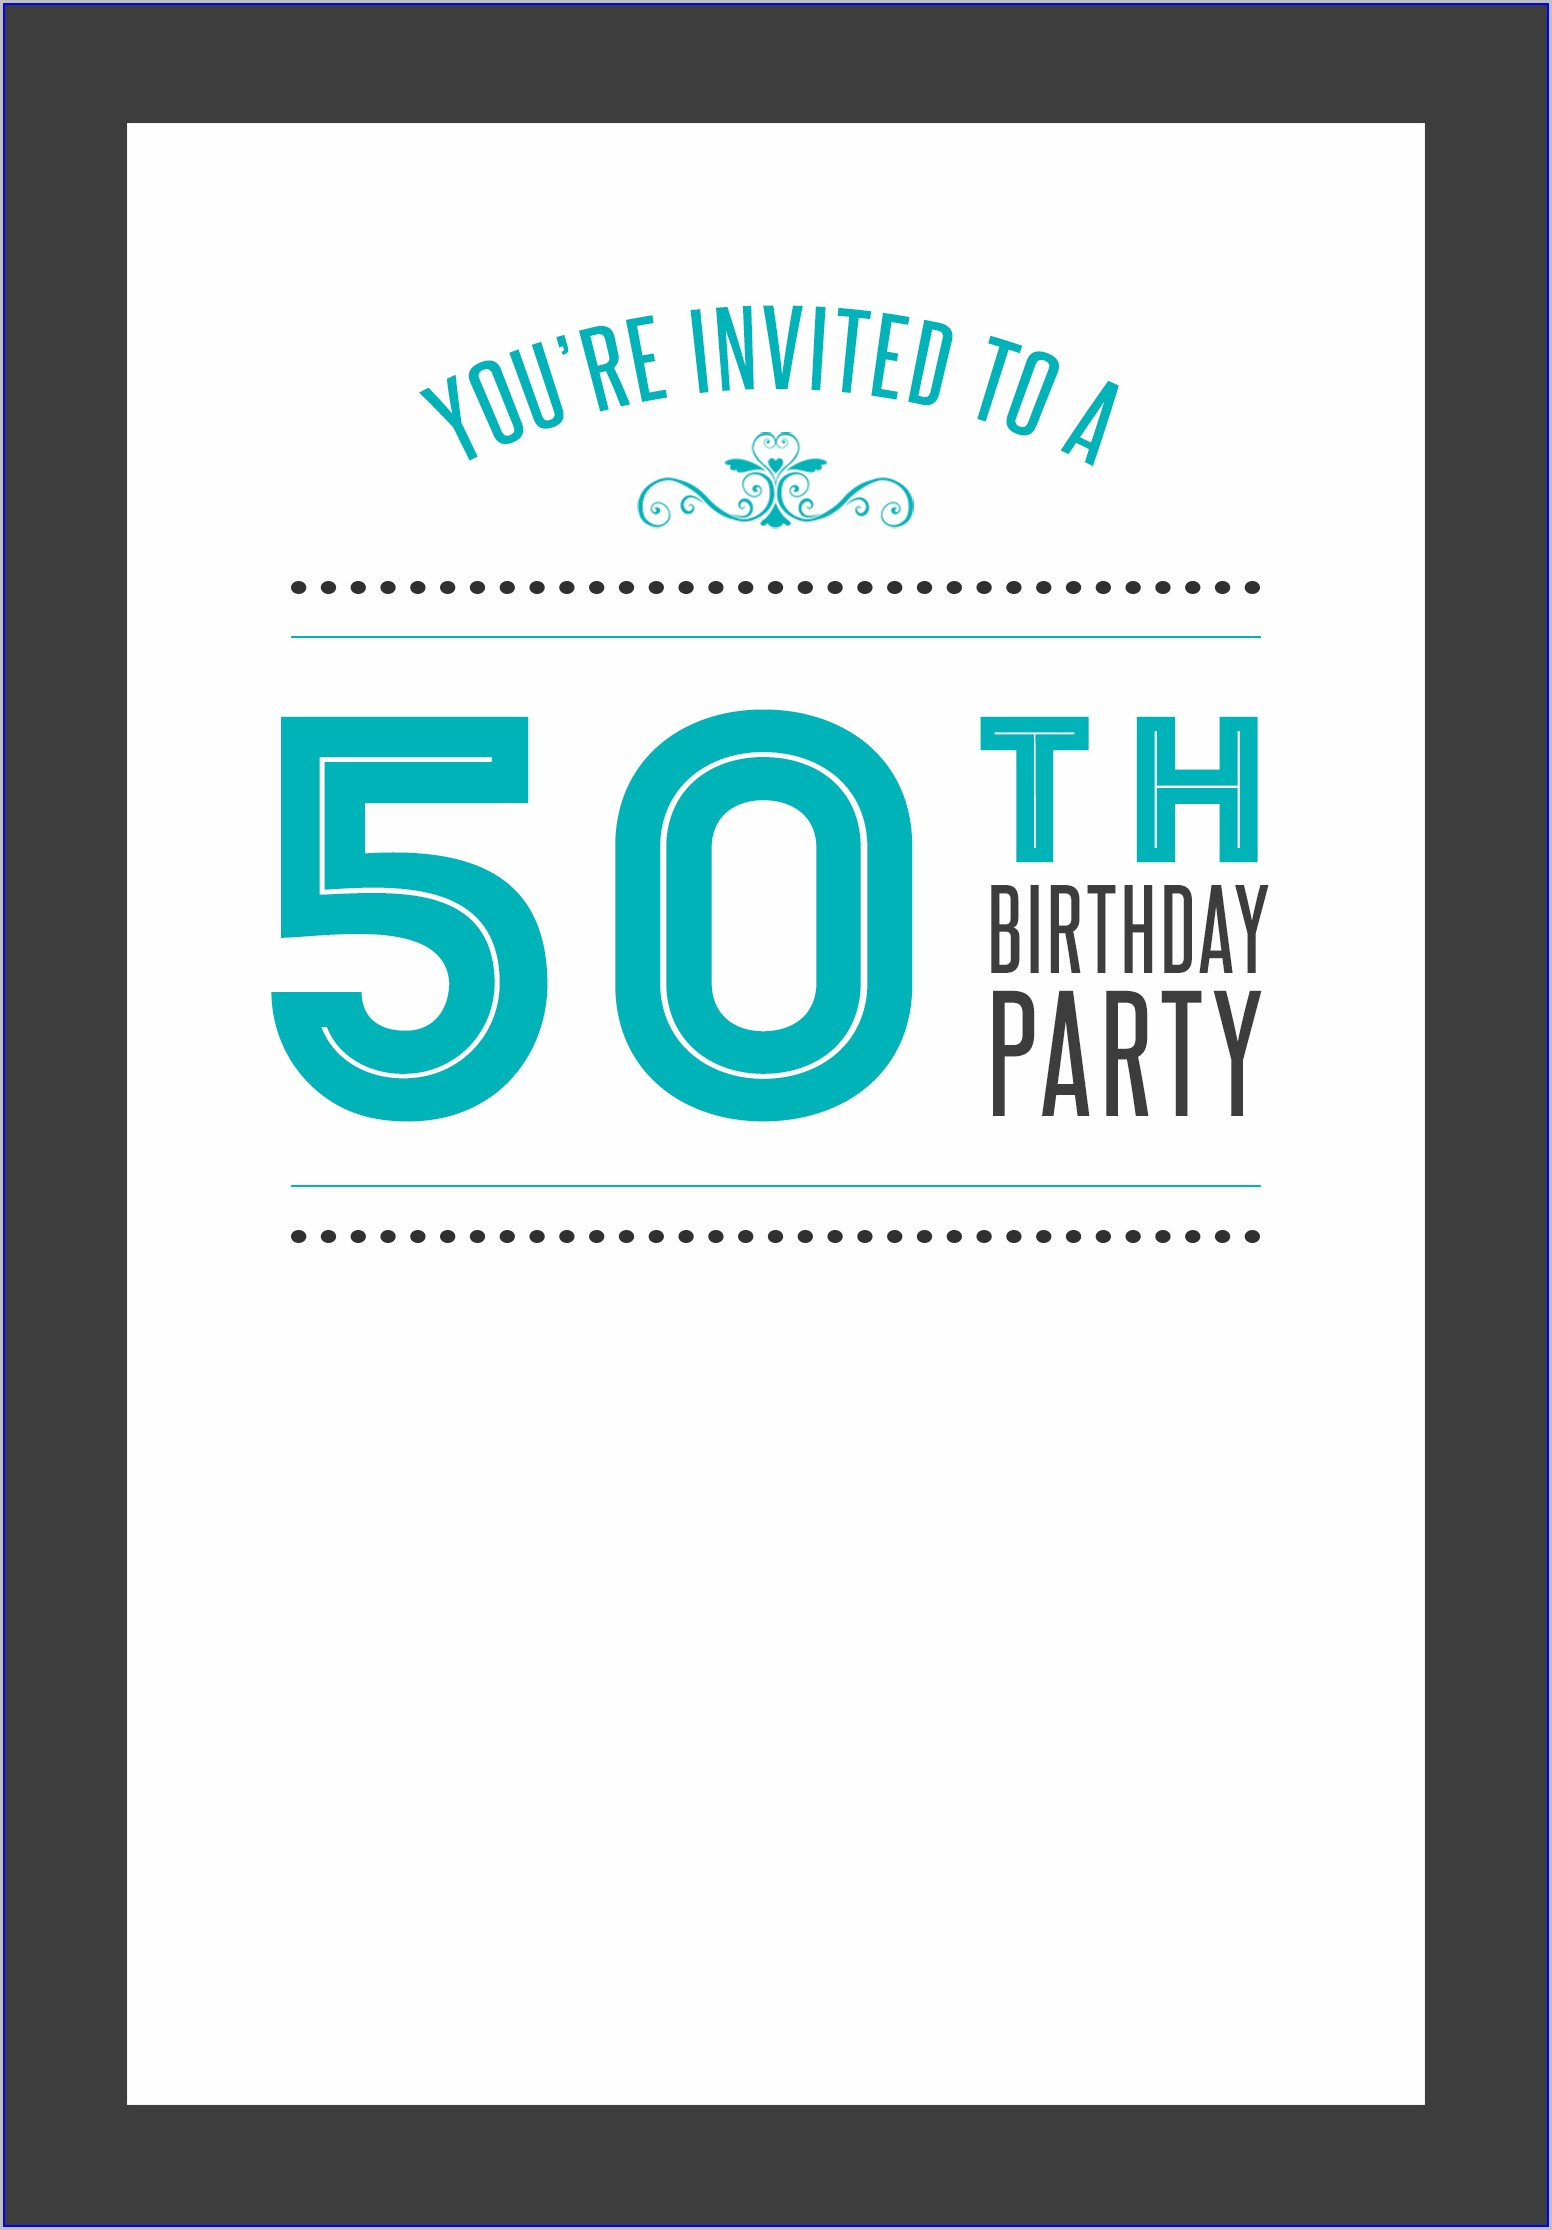 50th Birthday Free Birthday Invitation Templates For Adults